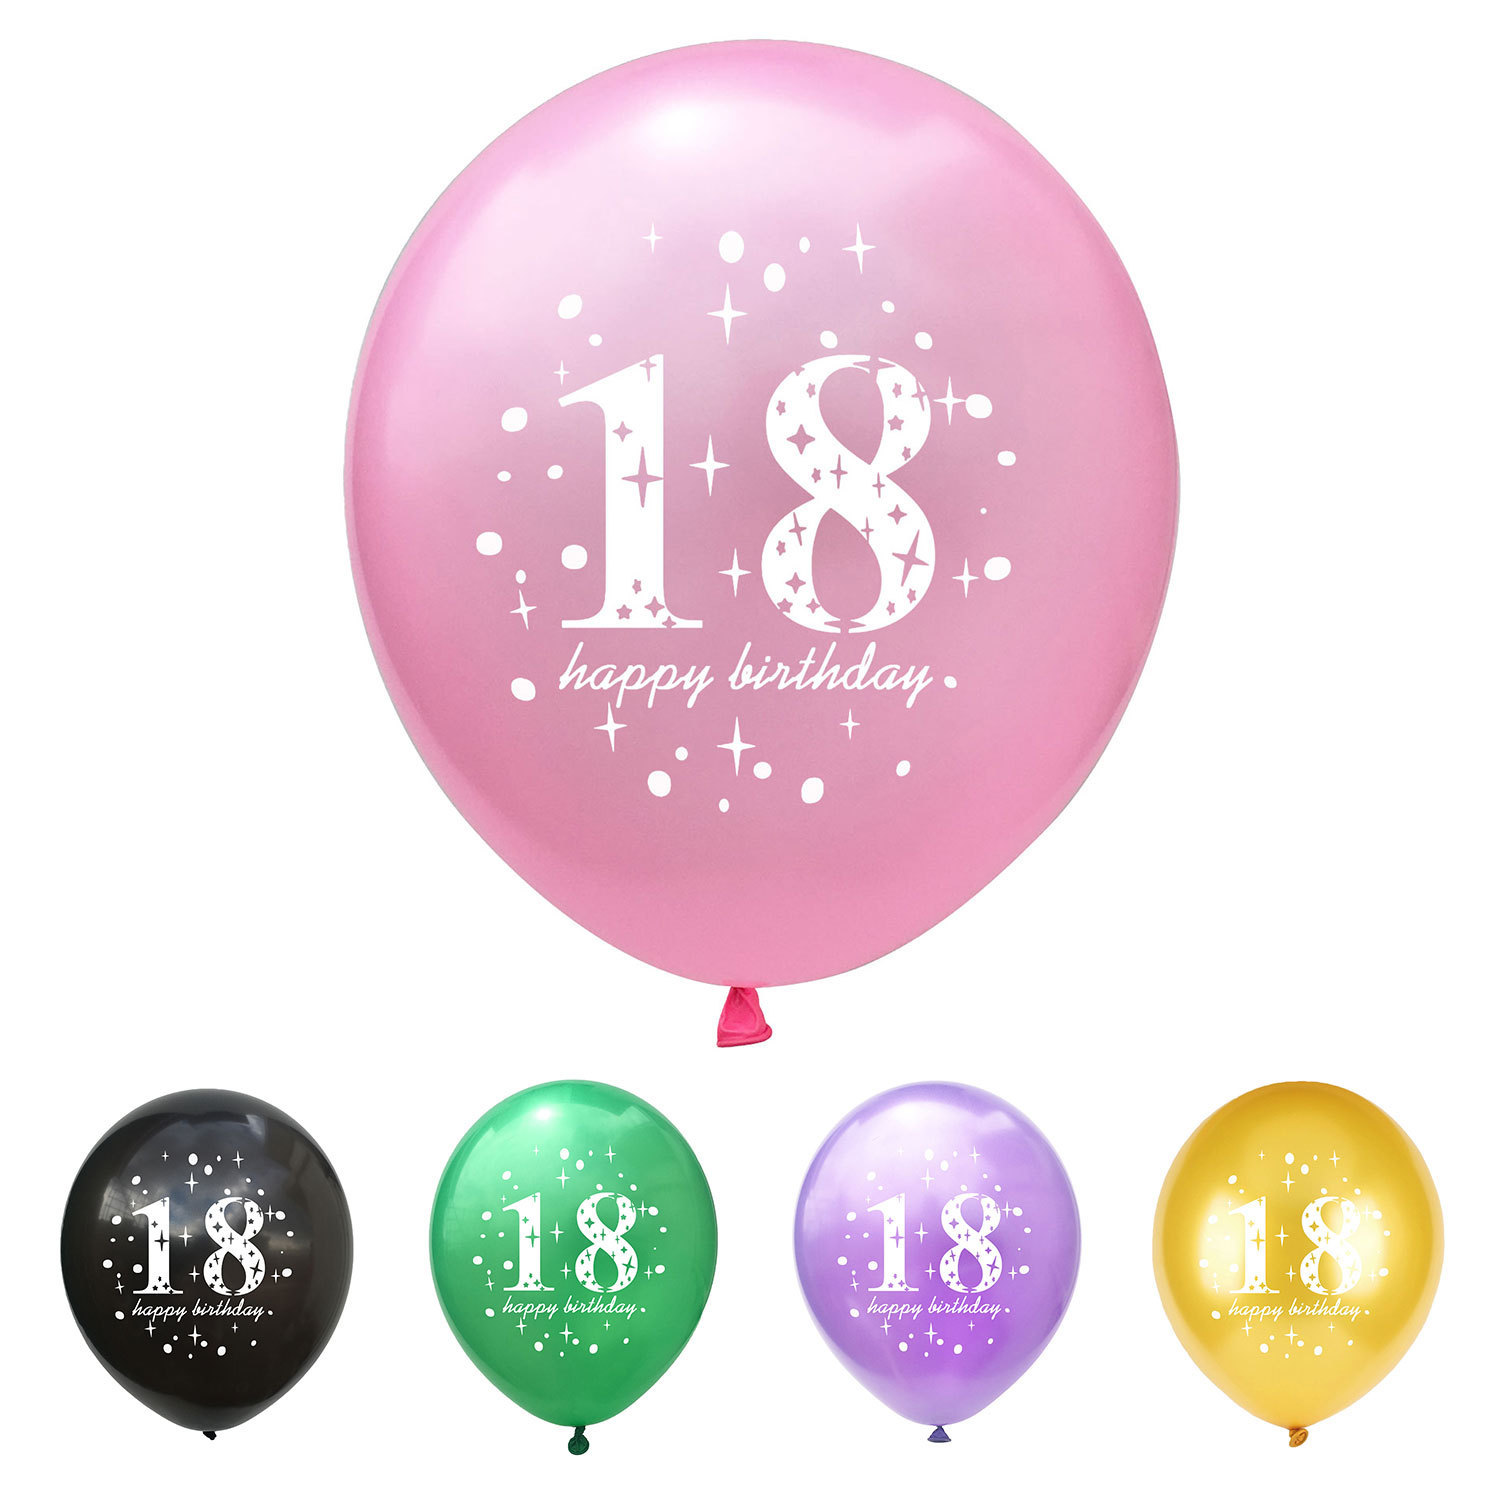 10pc Happy 18th Birthday Latex Number Balloon <font><b>18</b></font> Years Old Balloons Birthday Decoration Birthday Party Decorations Adult <font><b>Ballons</b></font> image